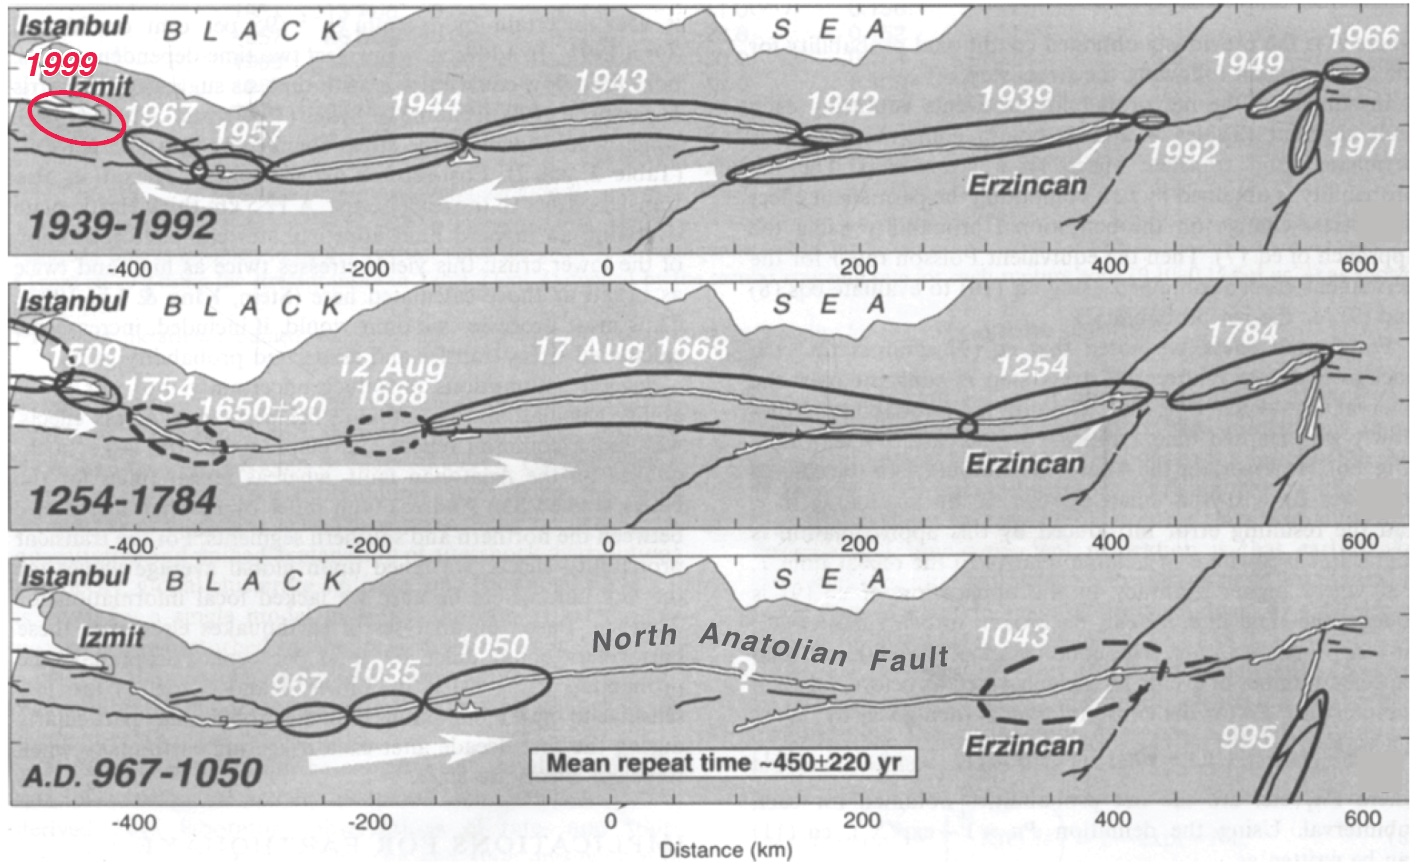 This figure of North Anatolian fault quakes is from Stein et al. (1997), updated for the 1999 Mw=7.6 Izmit quake, with the white arrows giving the direction of cascading quakes. Even though 1939-1999 saw nearly the entire 1,000km long fault rupture in a largely western falling-domino sequence, the earlier record is quite different. When we examined the inter-event times (the time between quakes at each point along the fault), we found it to be 450±220 years. Not only was the variation great—50% of the time between quakes—but the propagation direction was also variable.